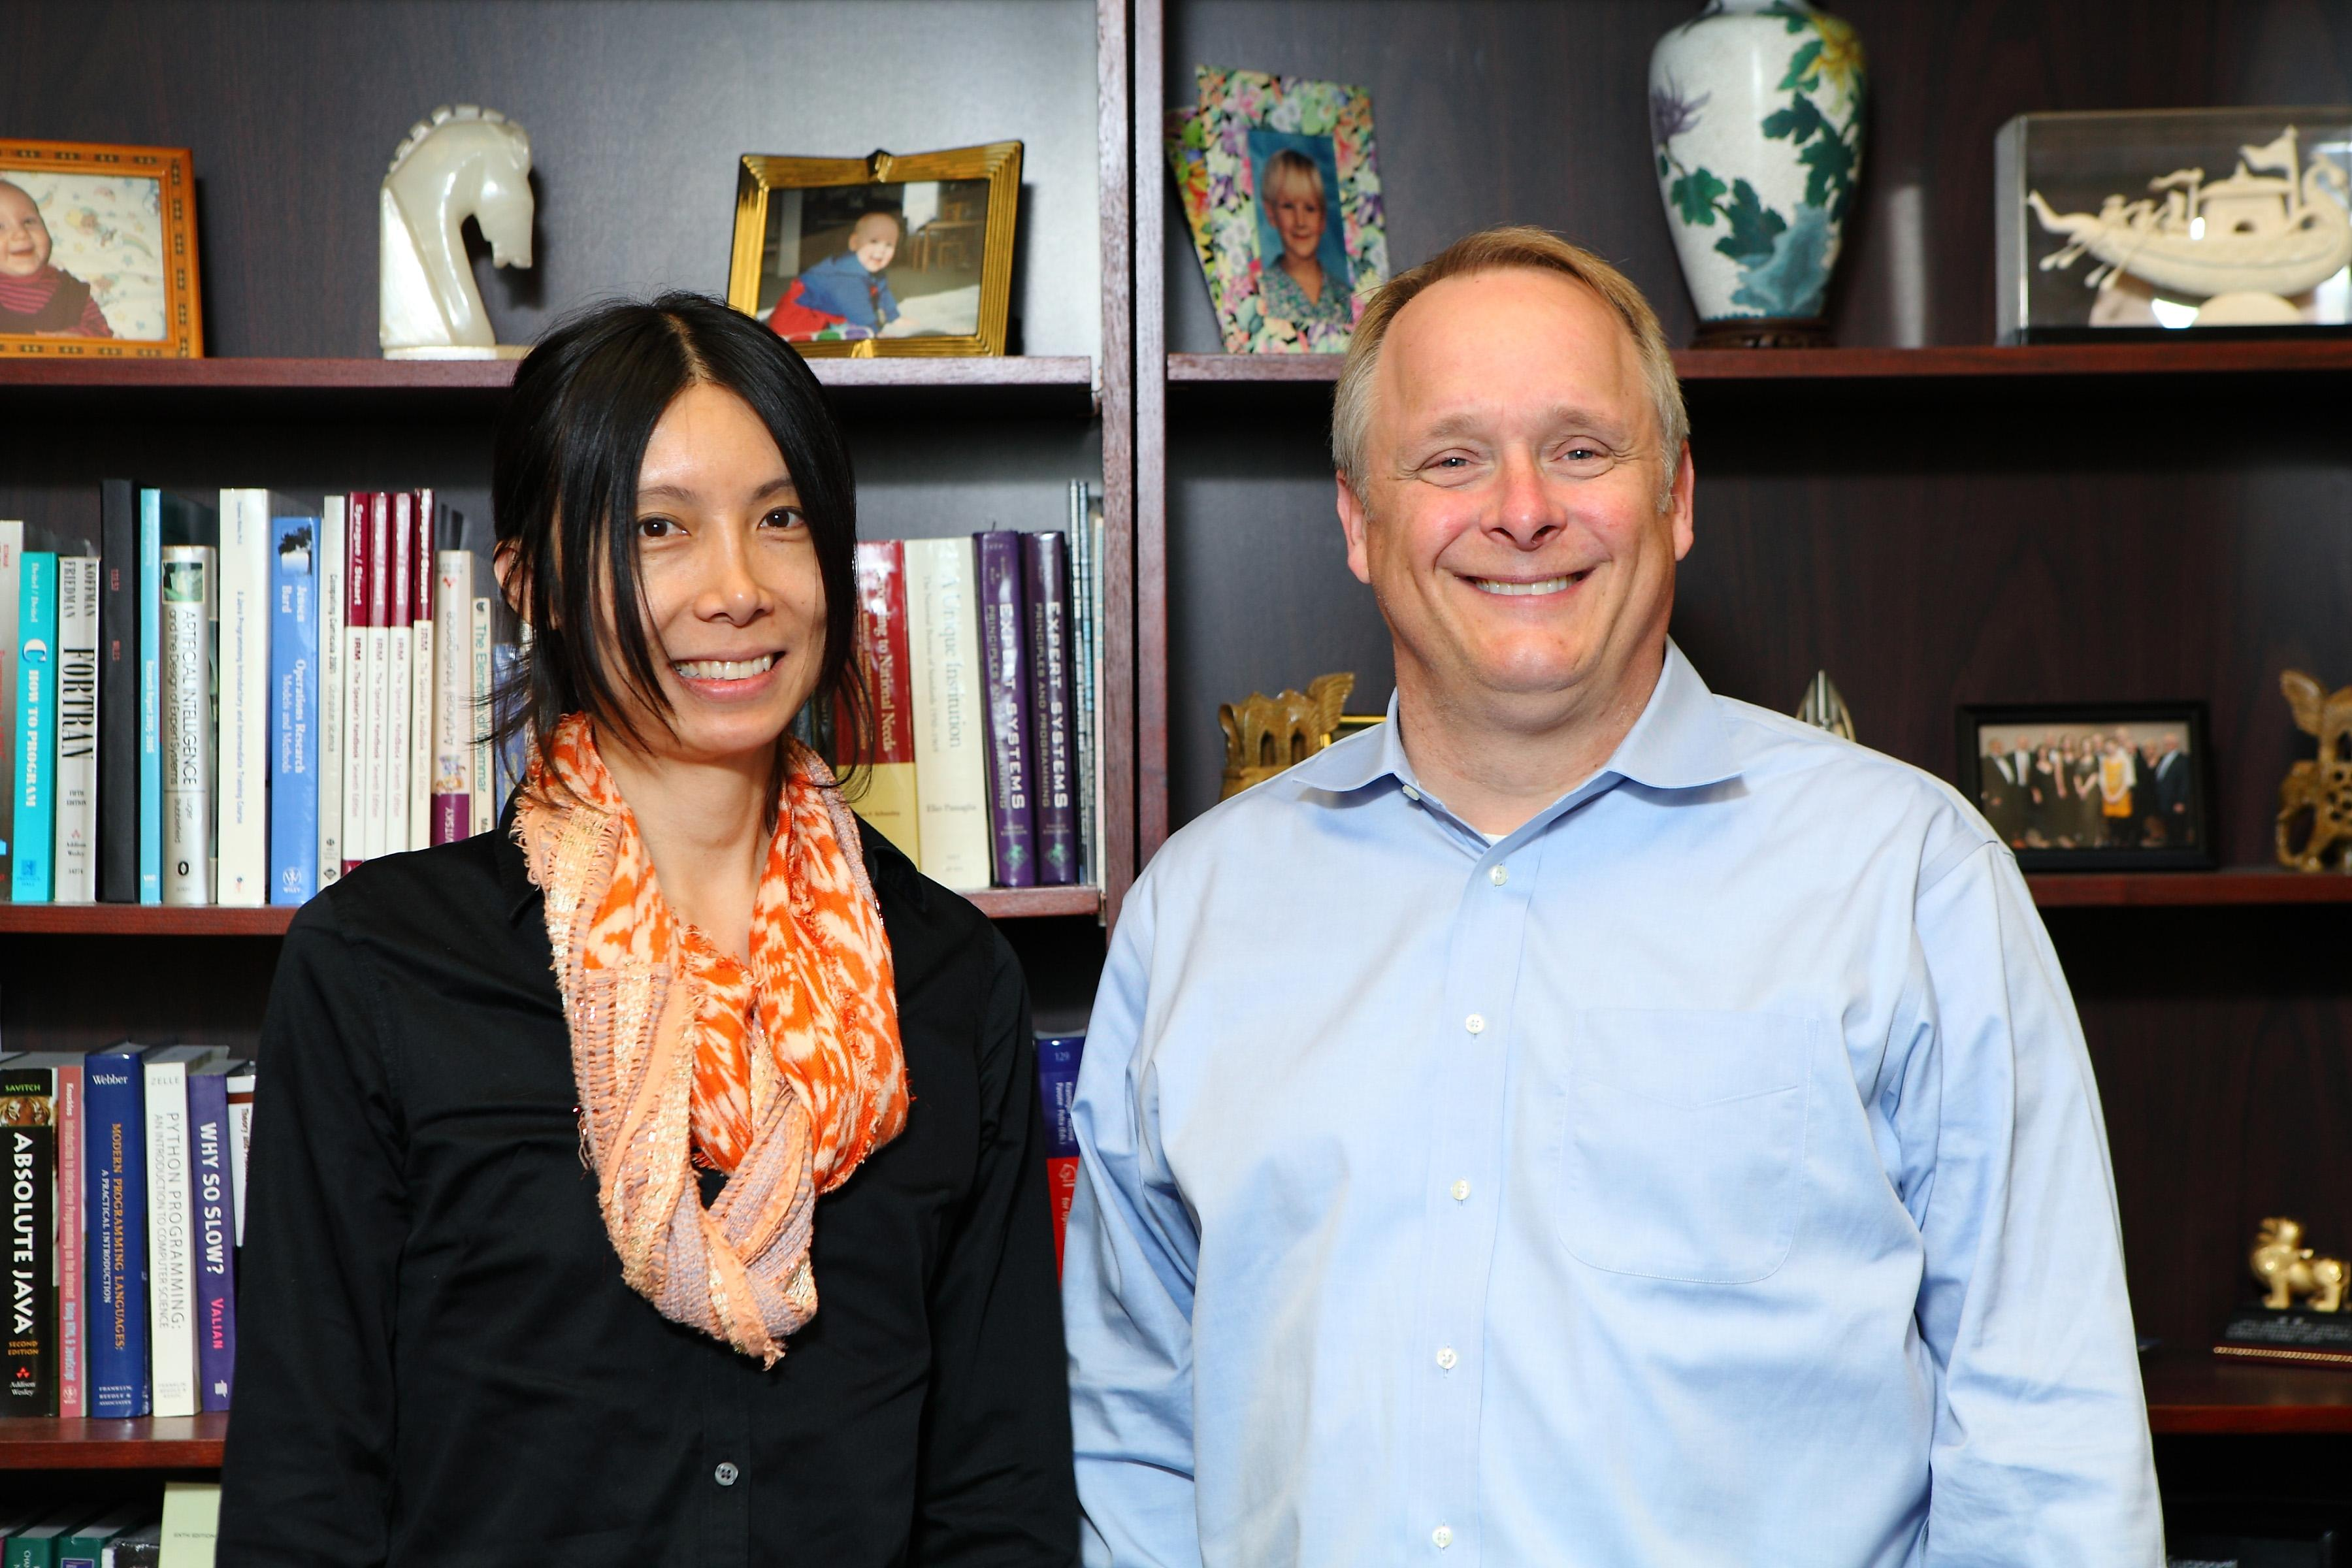 Dr. Alex Leow and Peter Nelson  (Jenny Fontaine / University of Illinois at Chicago)